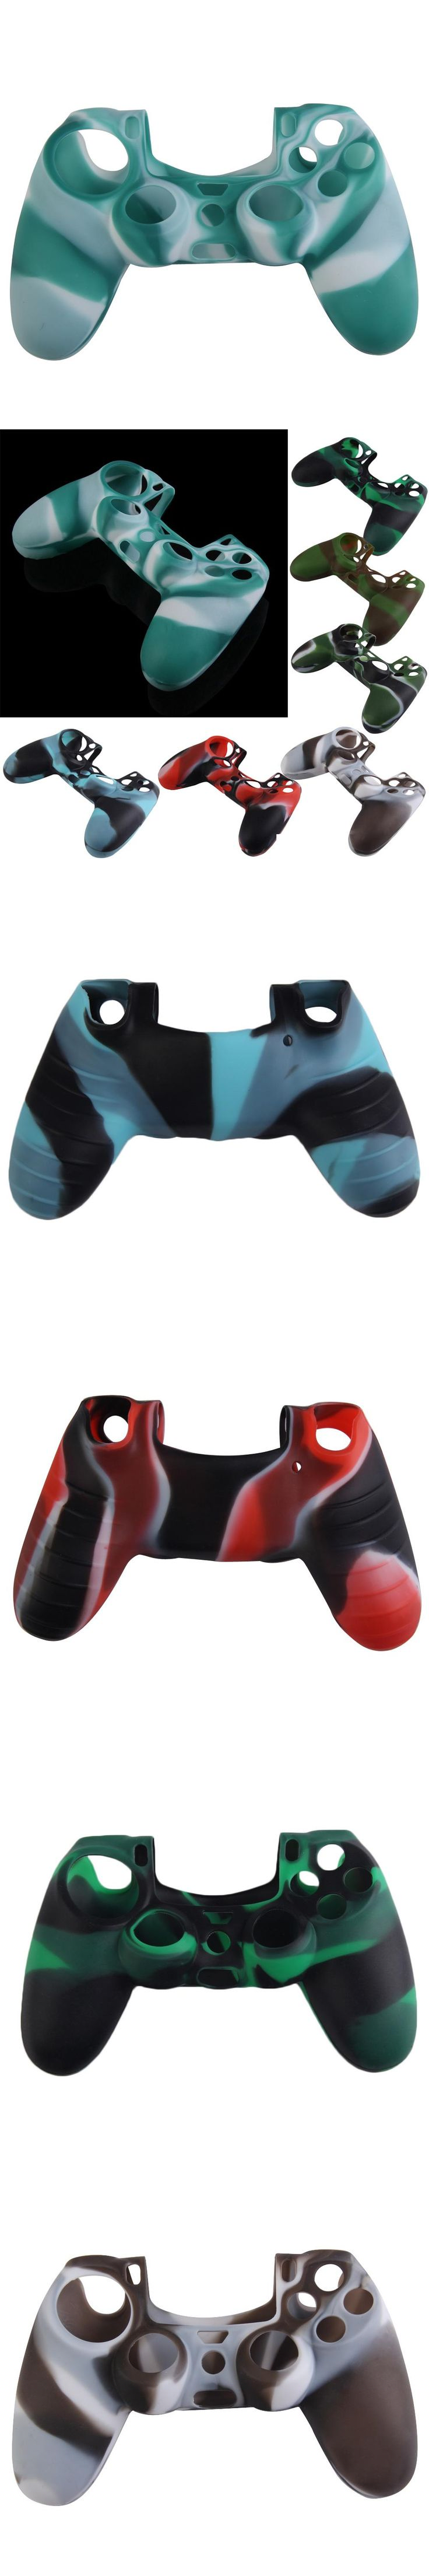 Silicone Gamepad Skin Cover Case Camouflage Color Anti-Slip Game Controller Protector Case Shell for PlayStation 4 PS4